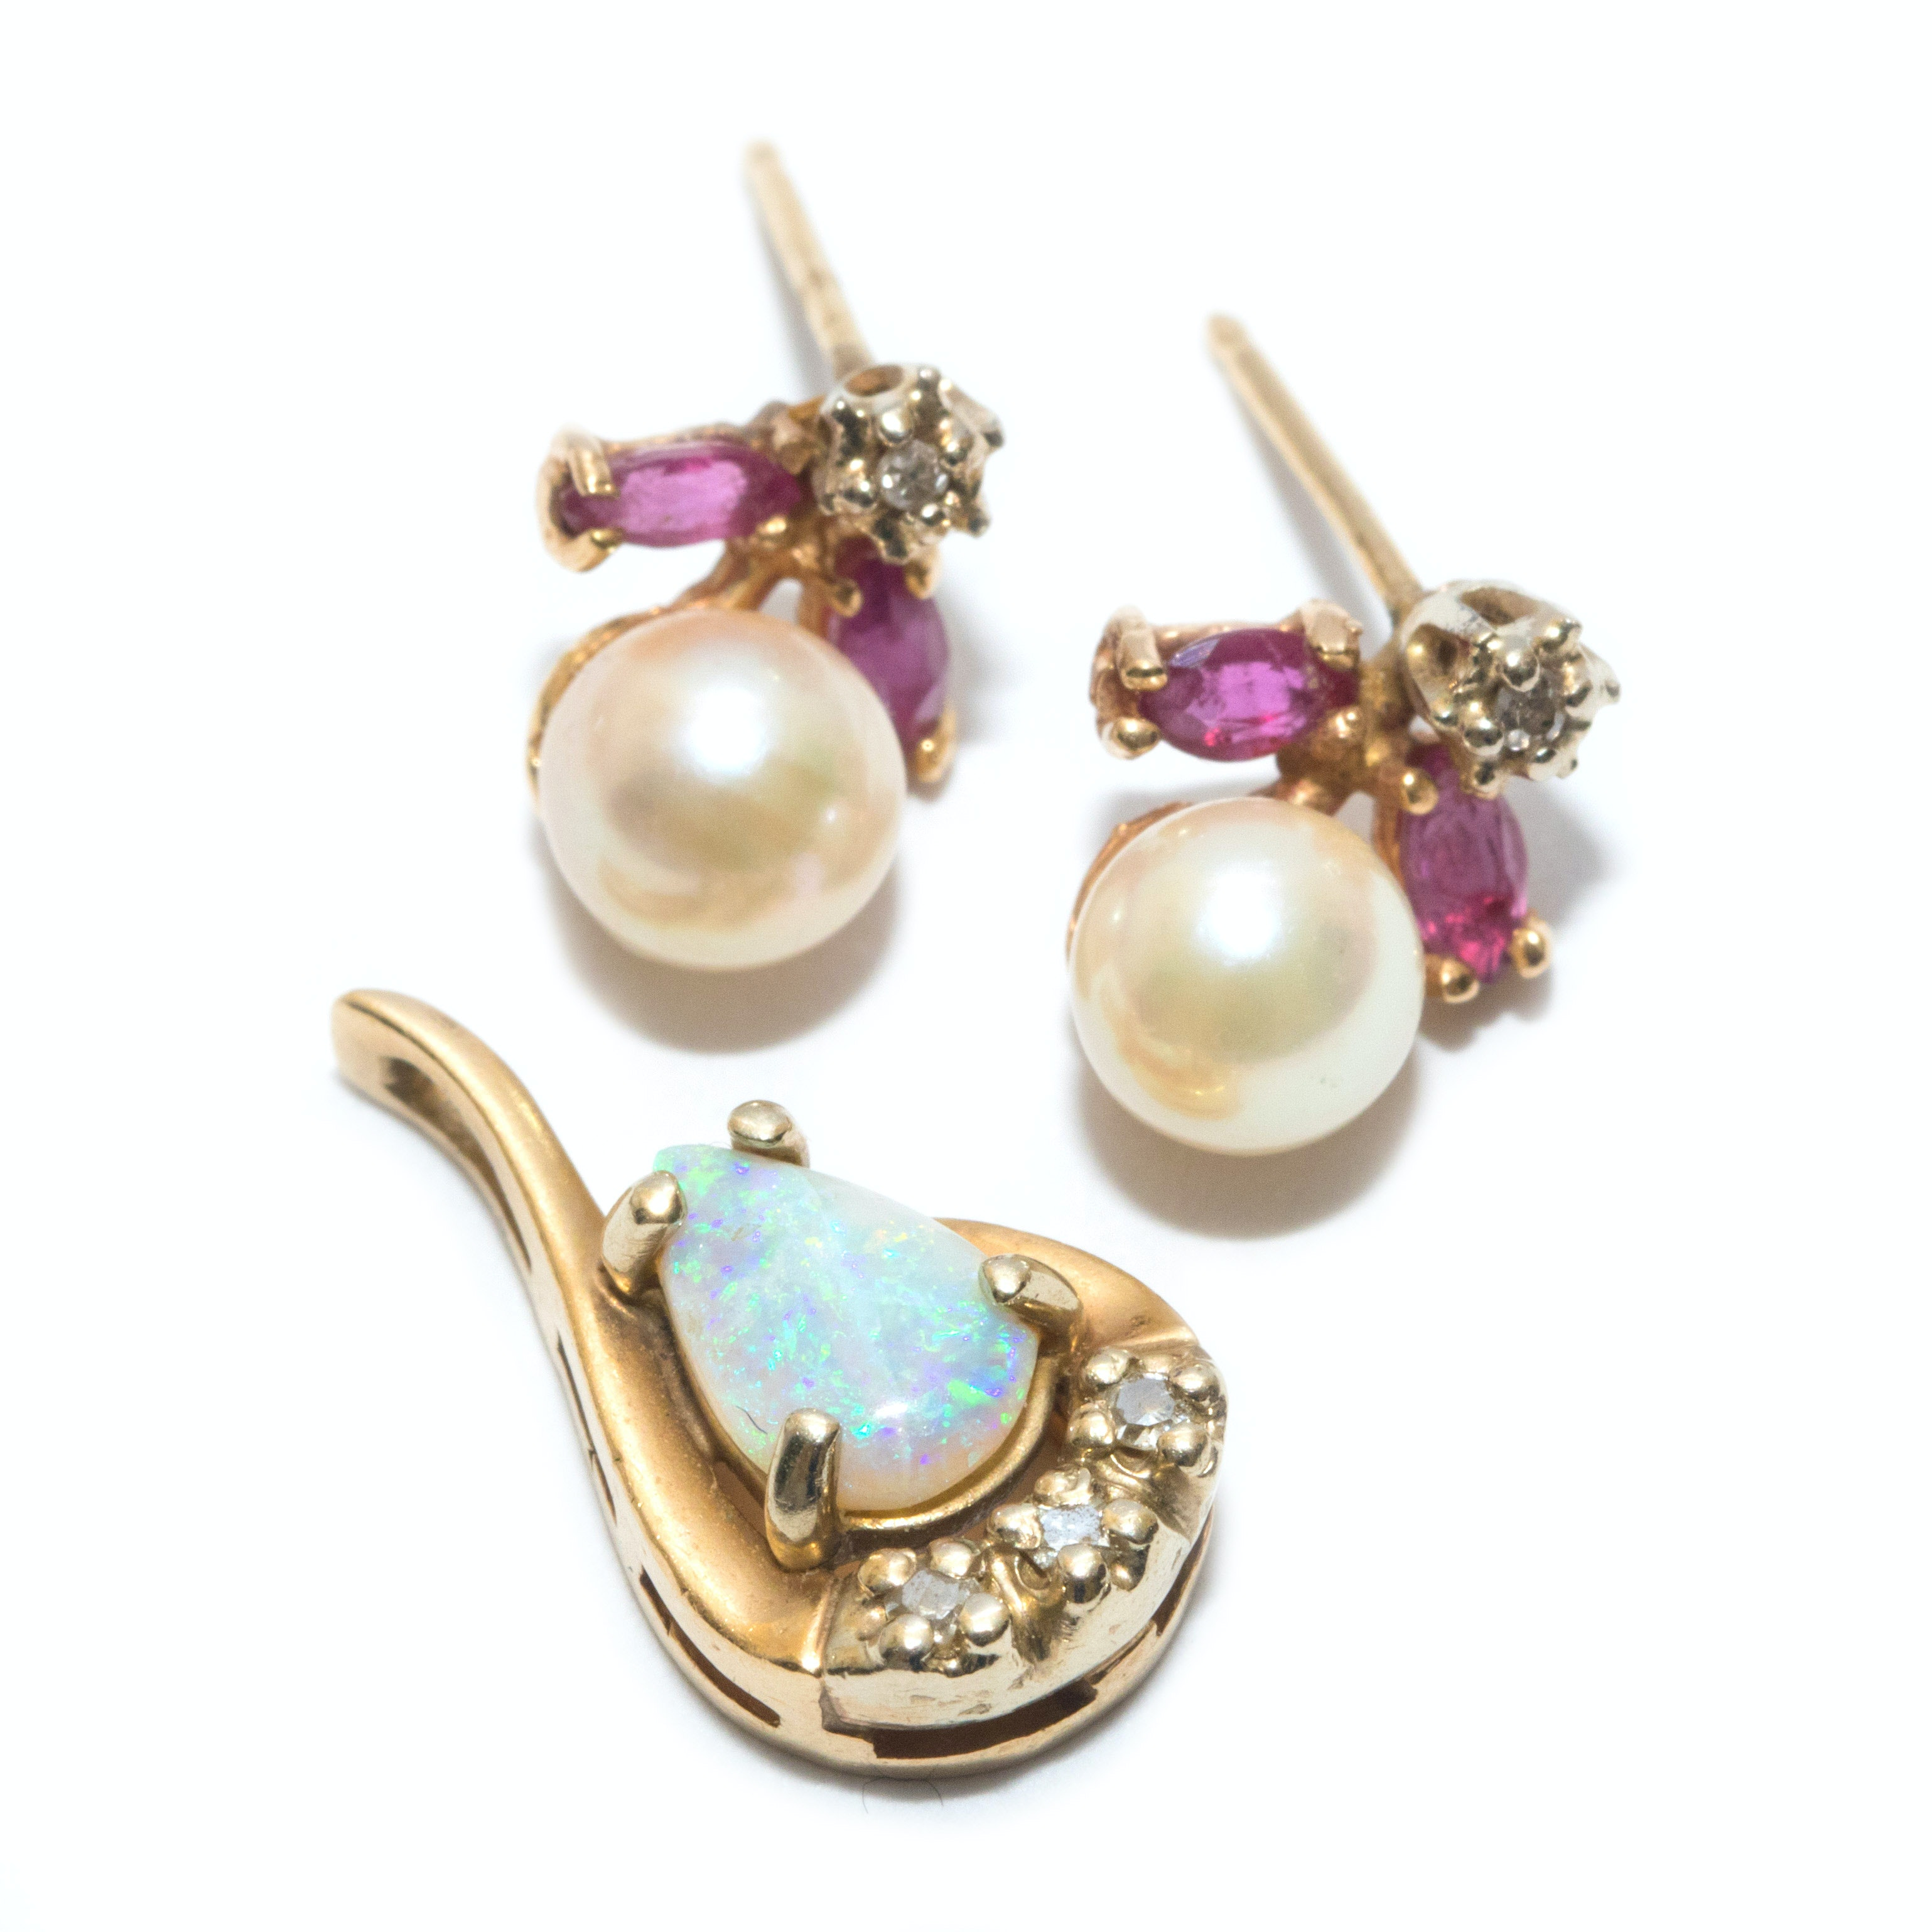 14K Yellow Gold Opal Pendant and Cultured Pearl Earrings with Diamonds and Rubies